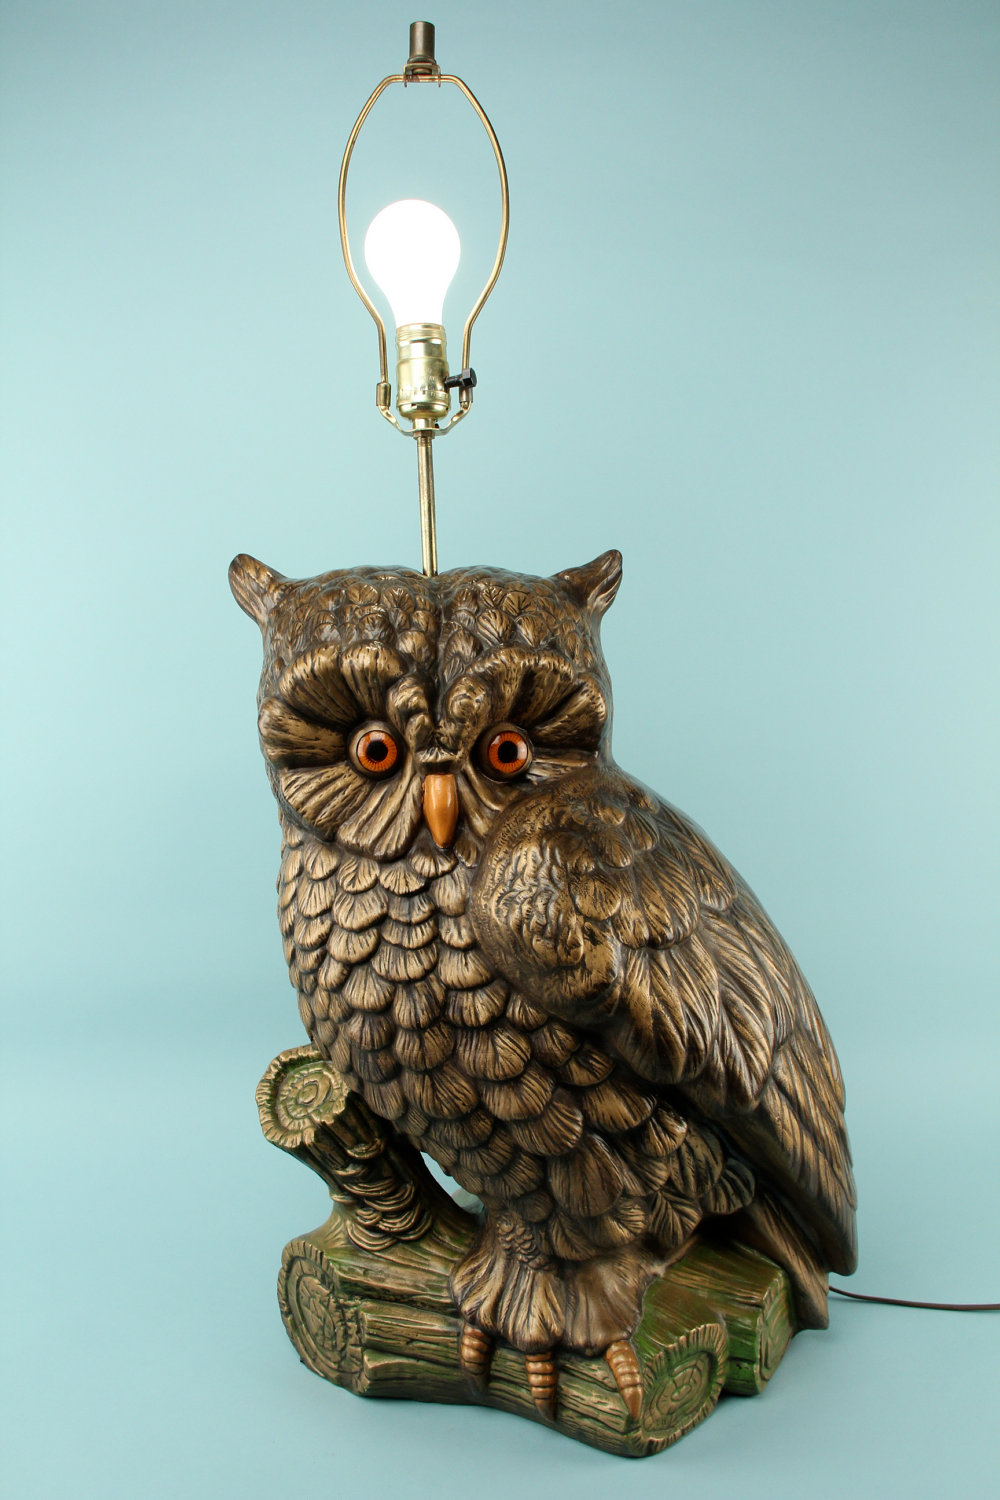 Vintage owl lamps - In Fact The Antique Owl Lamp Today Is The Best Fashionable Lighting In The World Try The Antique Owl Lamp Today And Thank Me Later